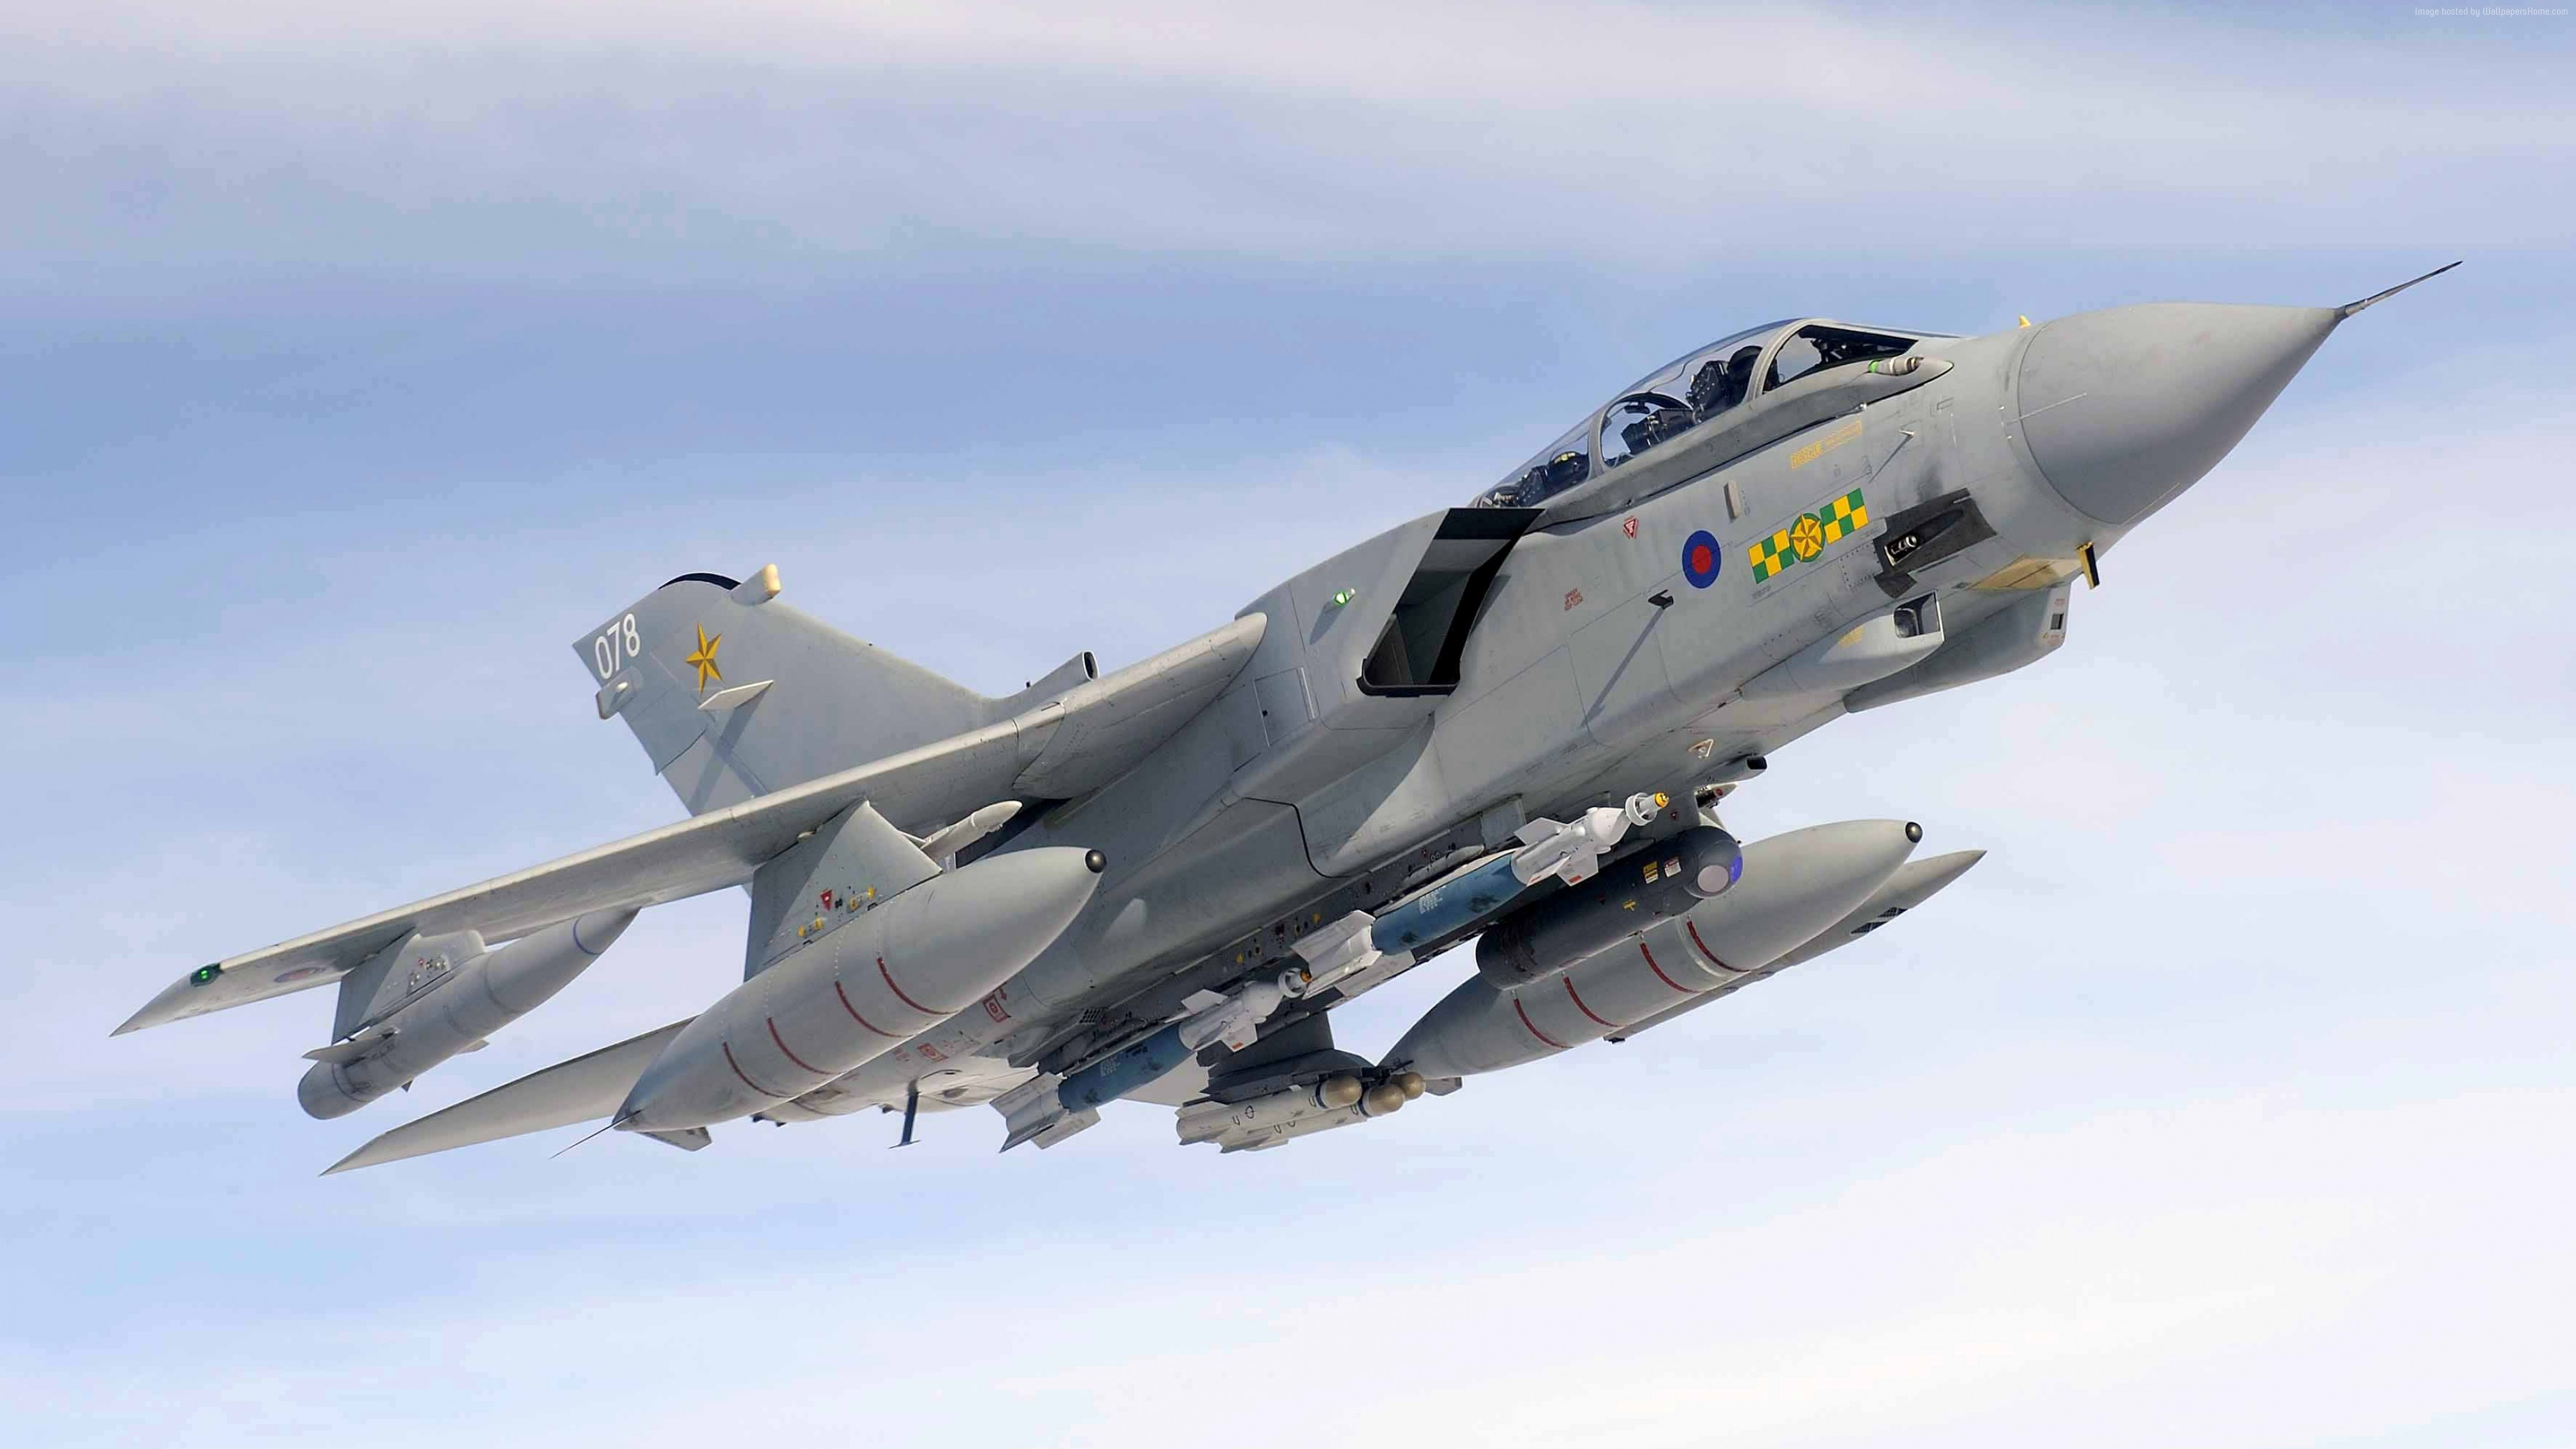 Wallpaper Panavia Tornado GR.4, fighter aircraft, British Air Force, Military